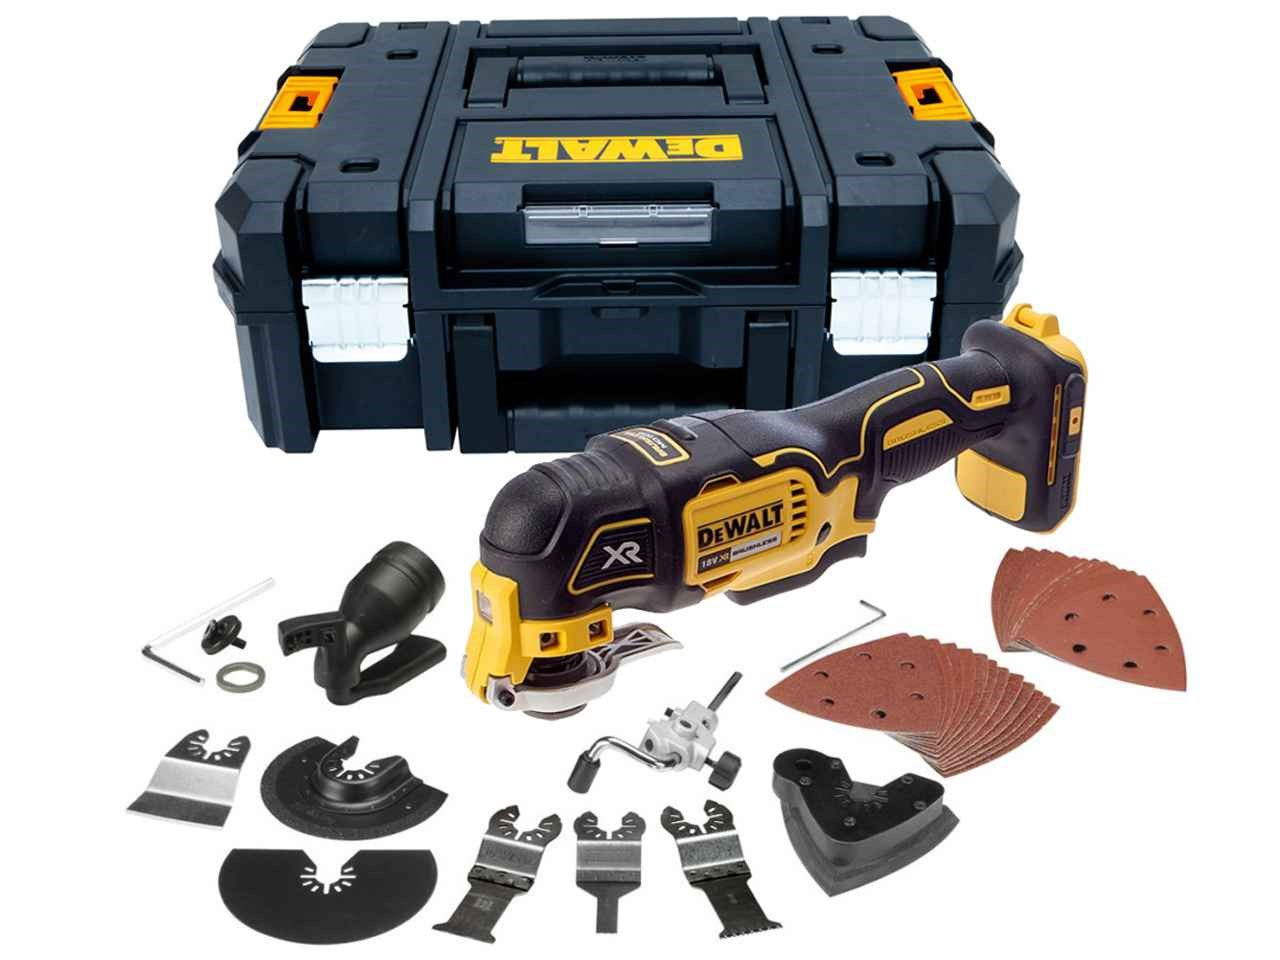 dewalt dcs355nt 18v xr brushless multi tool bare unit in. Black Bedroom Furniture Sets. Home Design Ideas